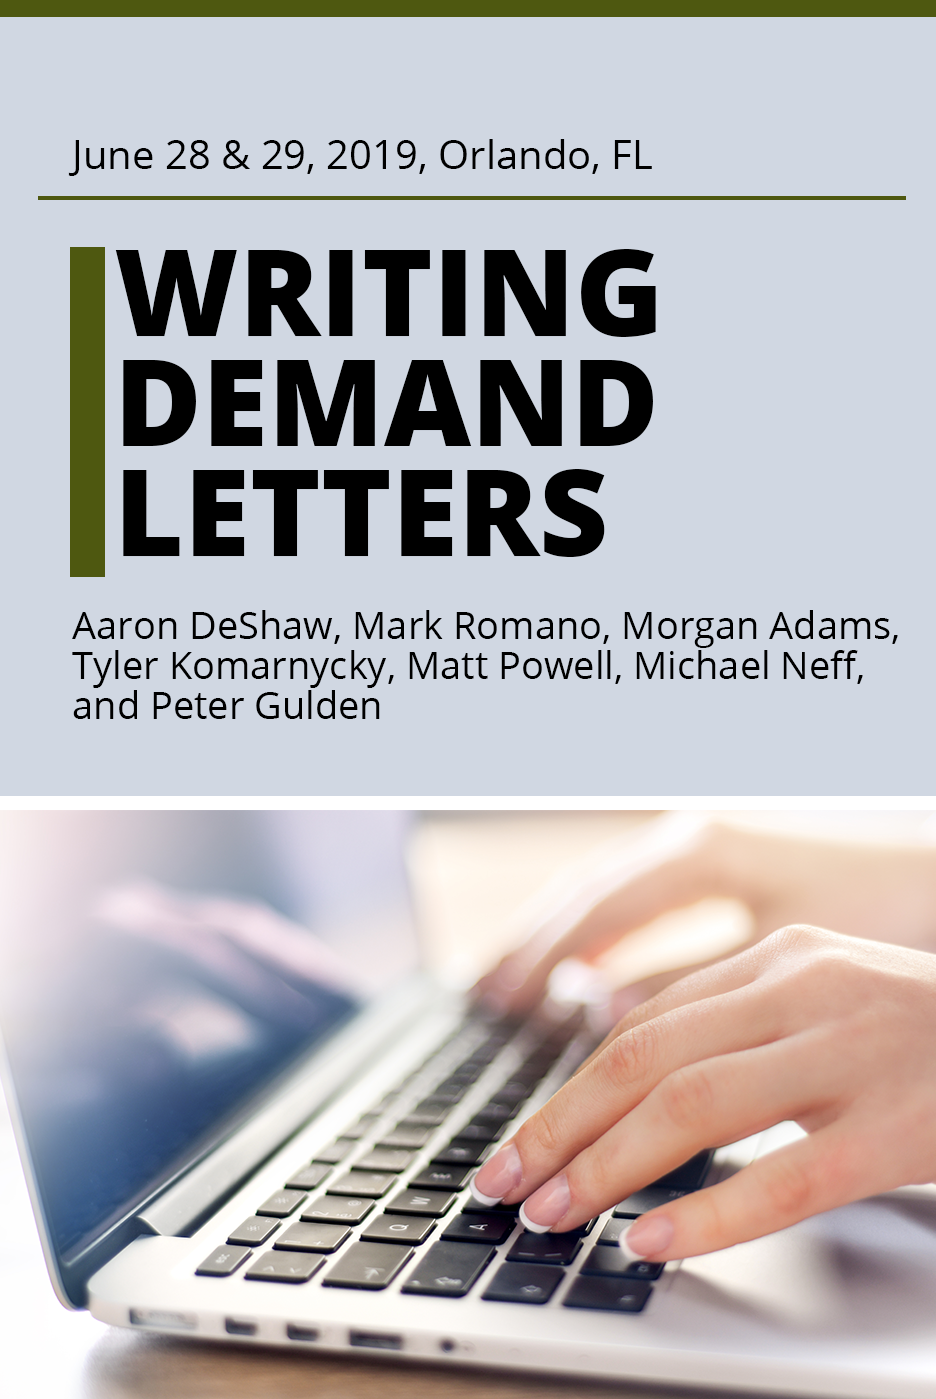 Writing Demand Letters